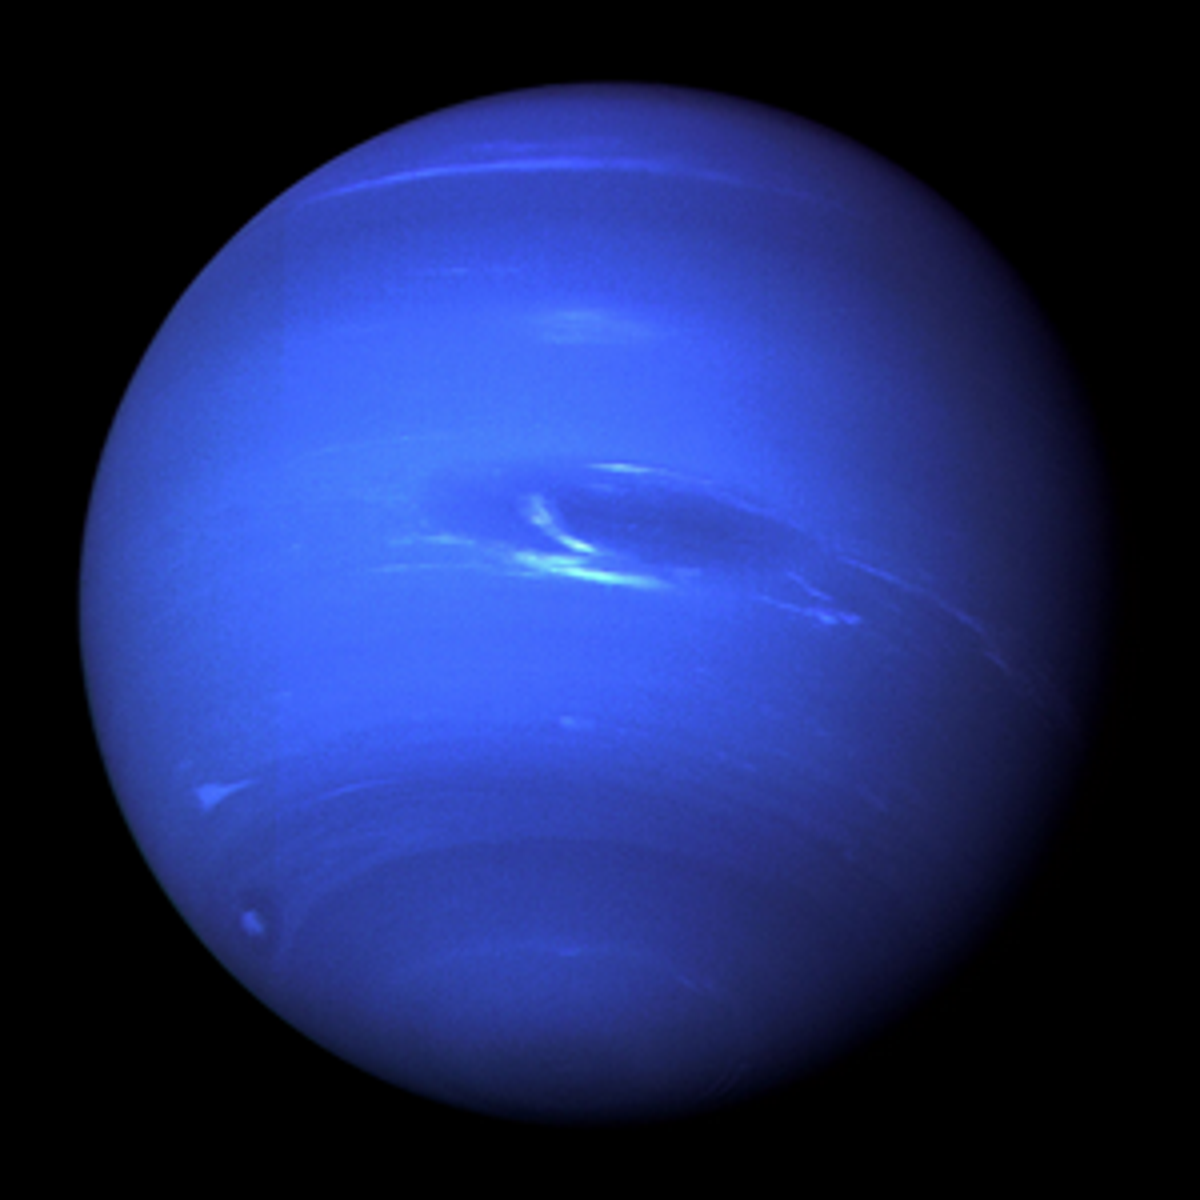 A photo of Neptune taken on August 20, 1989 during Voyager 2's flyby.